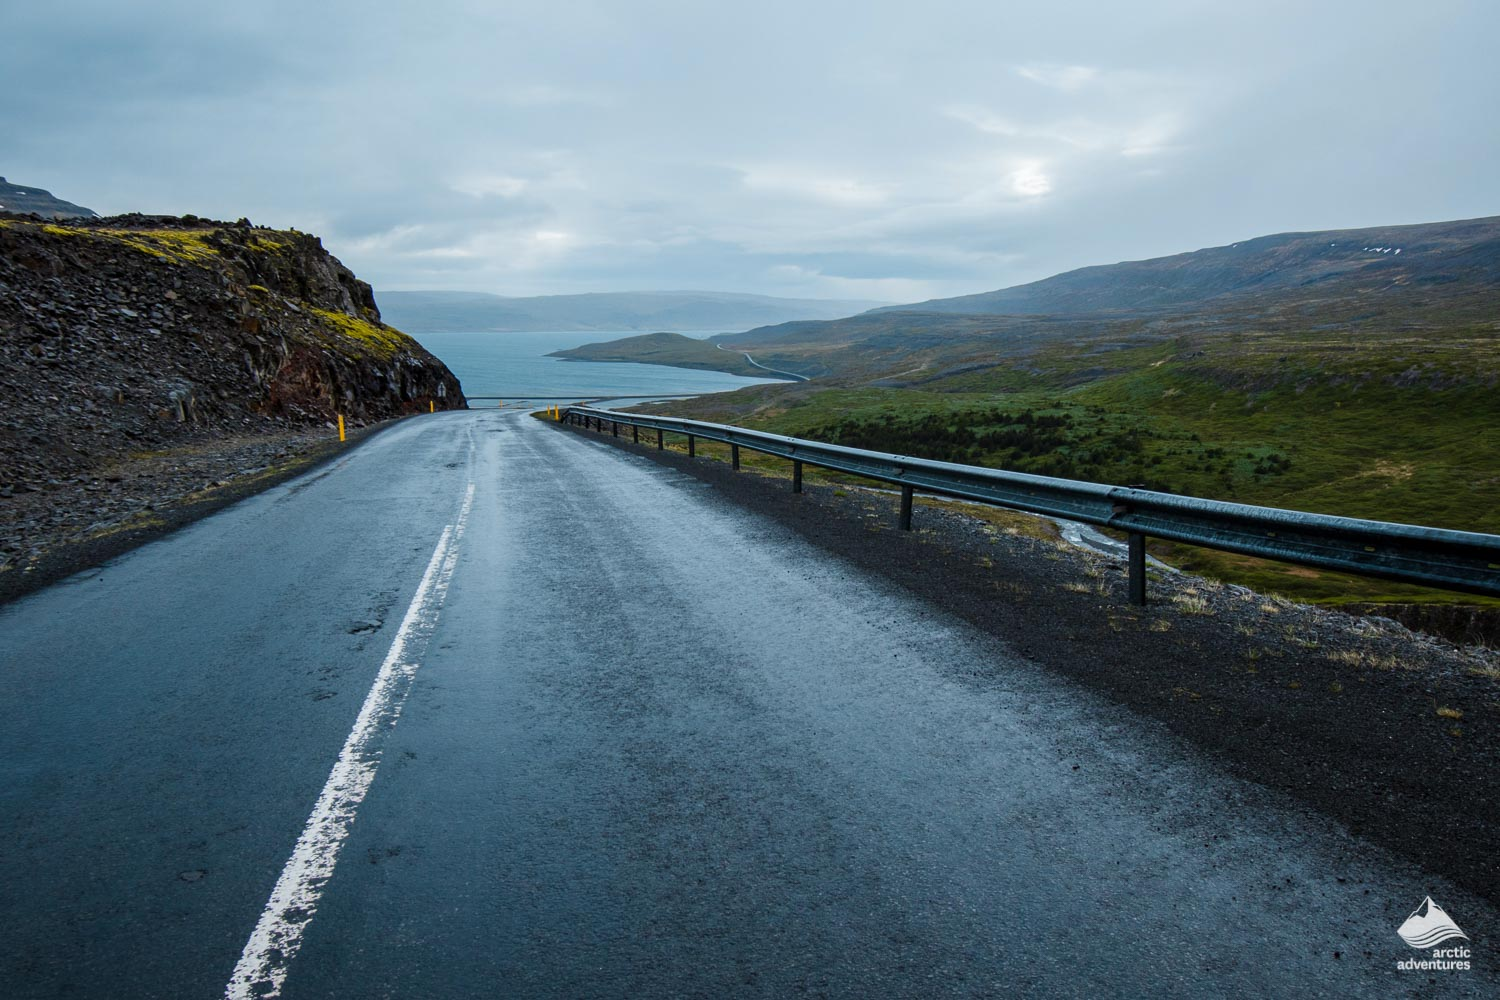 Road in Iceland with a view to a lake